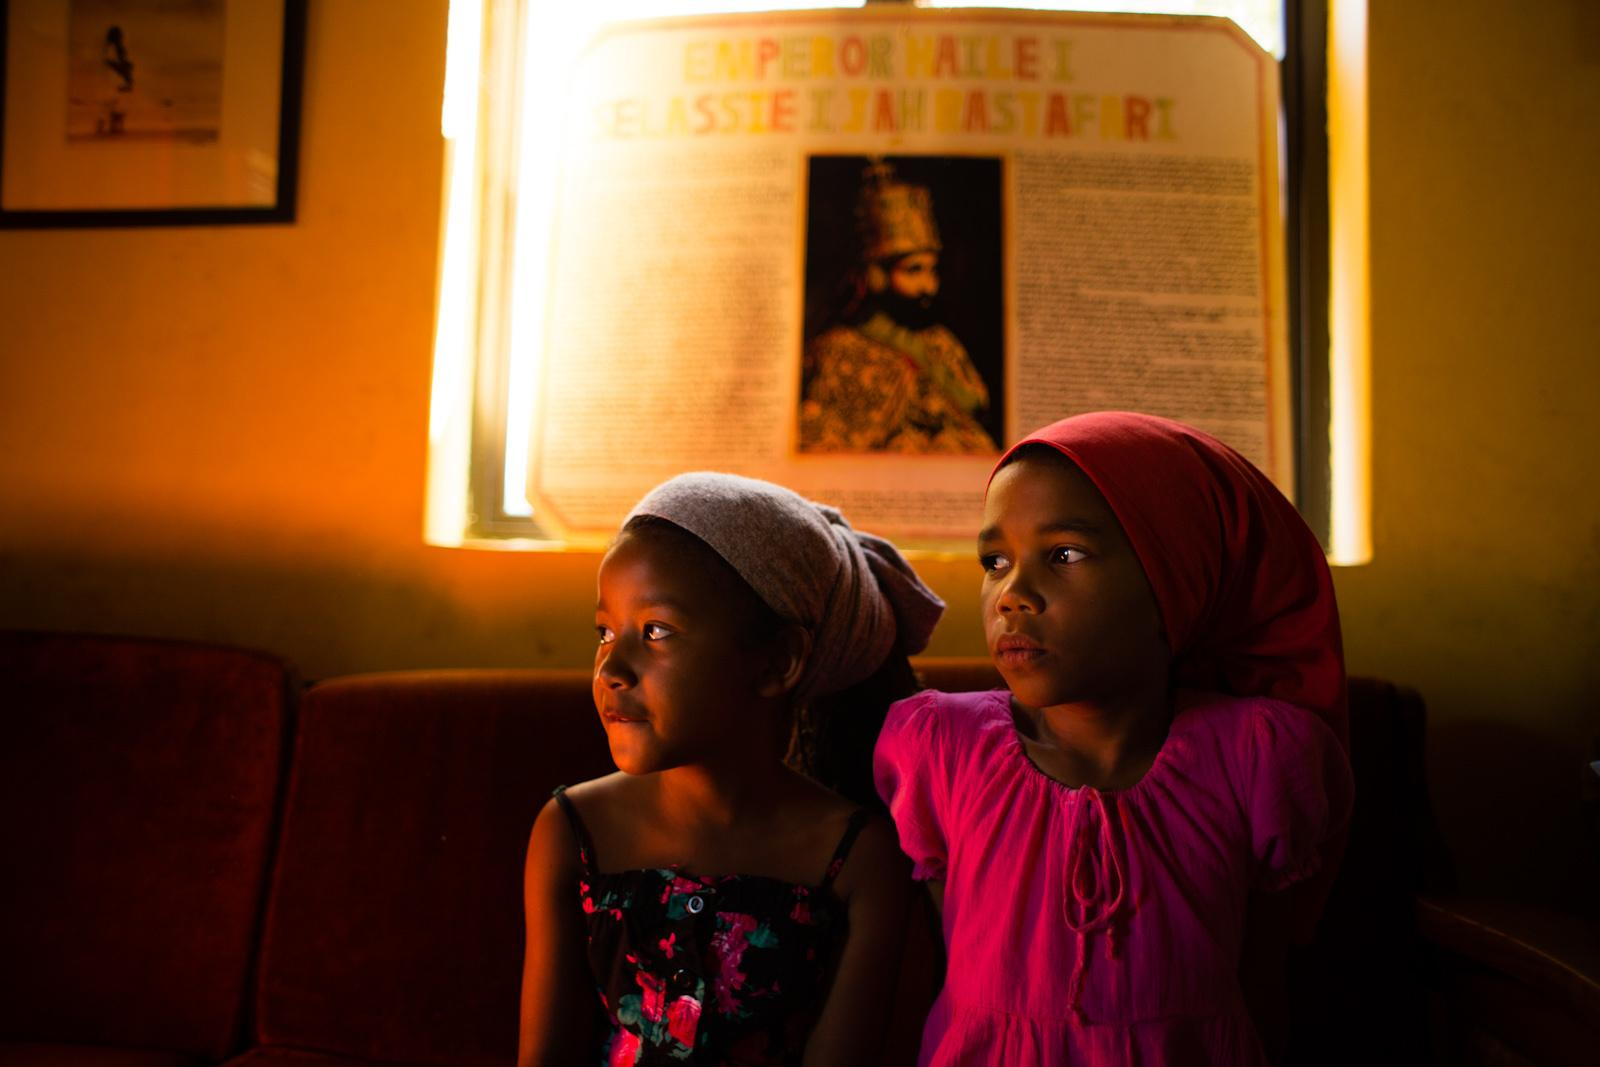 KNYSNA, SOUTH AFRICA - February 08, 2015: During their Sunday's workshop, Empress (L ) and Naphiteta (R ) sit on a couch in front of a poster of Haile Selassie in the home of Sister Kerri at Judah Square, Knysna, South Africa on February 08, 2015. The workshops are designed to teach the children about Rastafari culture of that religion is an important part. The Rastafari movement is seen as an extension of Christianity, that praises Haile Selassie, Emperor of Ethiopia from 1930-1970, as the second coming of Jesus Christ on Earth.